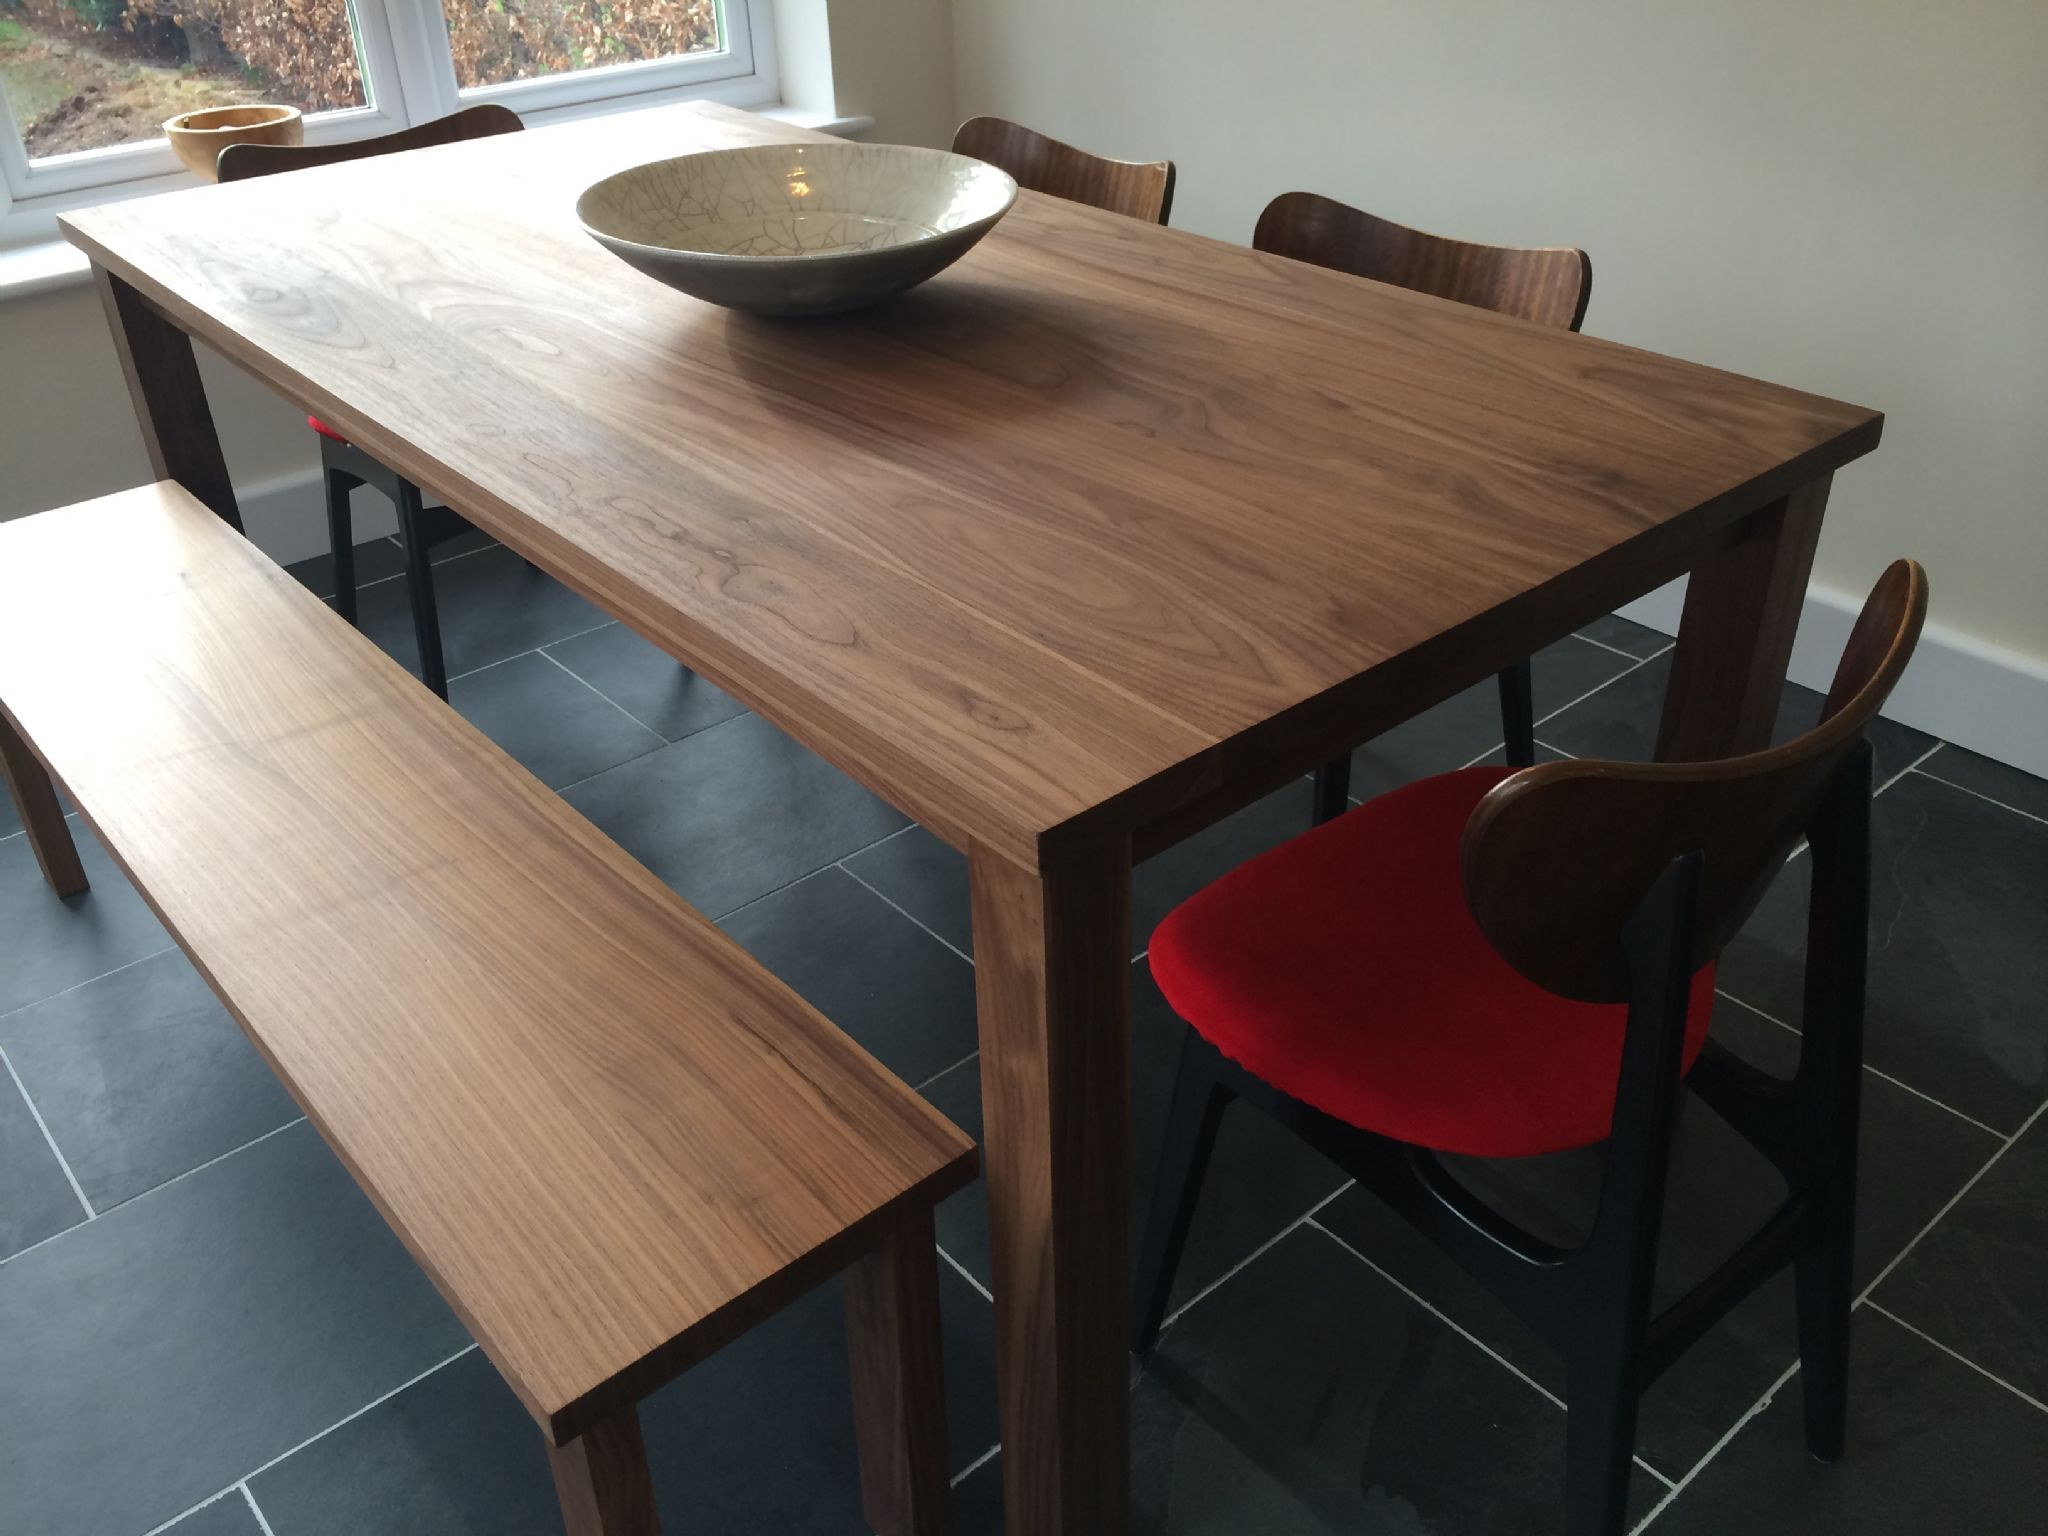 Solid American Black Walnut Dining Table And 2 Benches The Thixendale